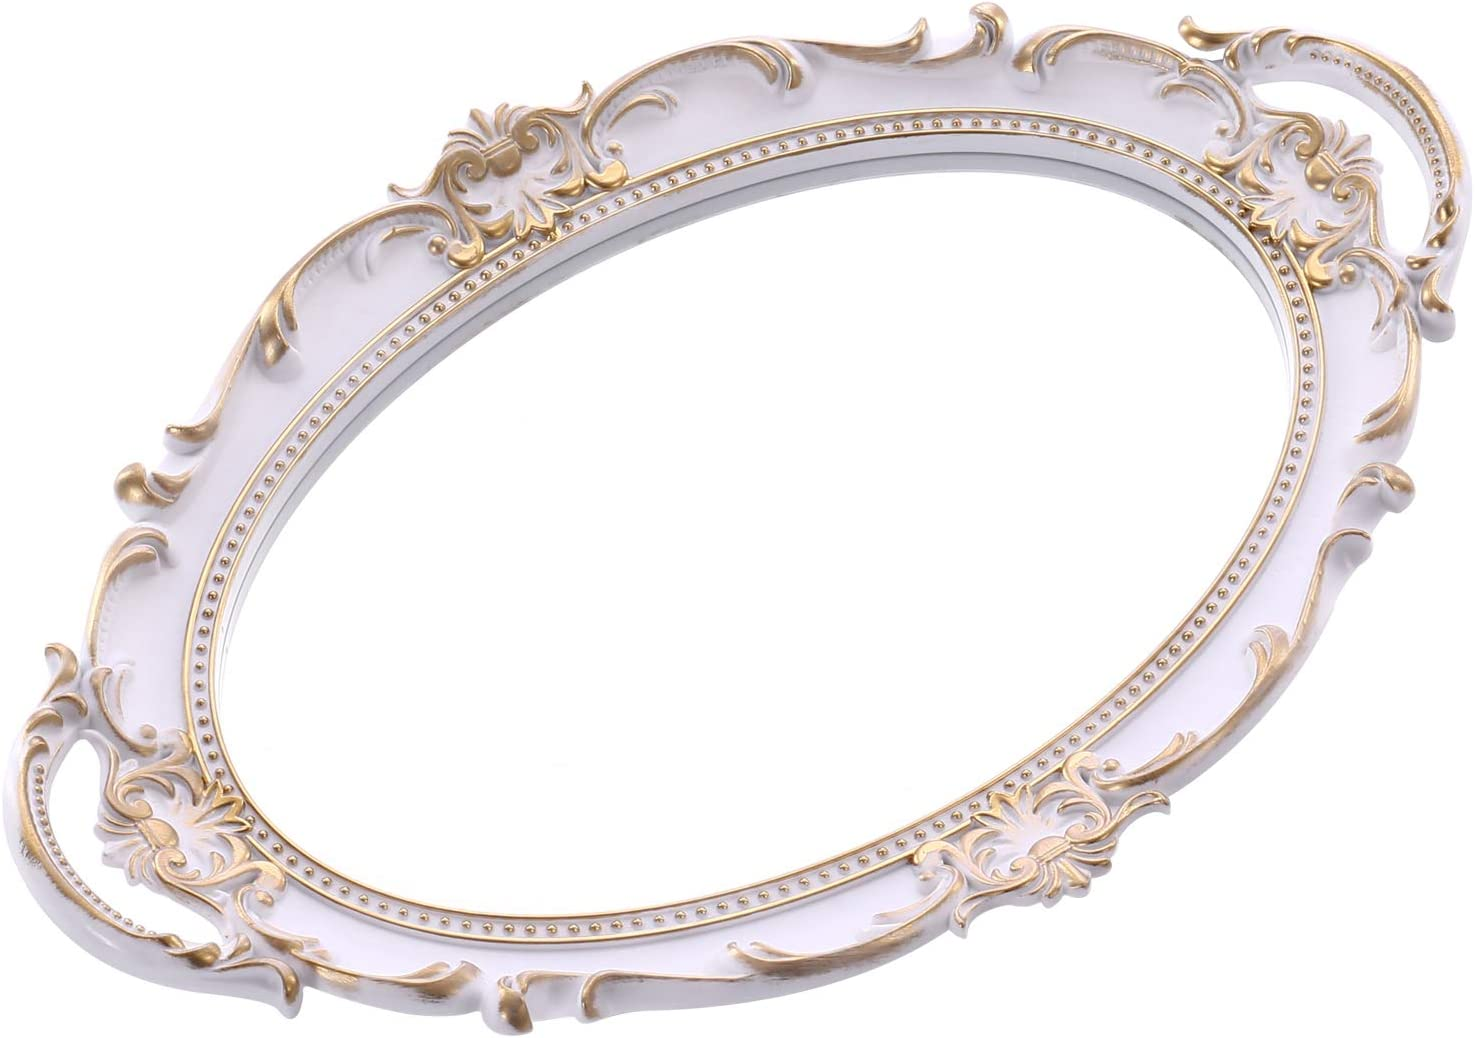 Sooyee Decorative Mirror Tray,Gold Mirrored Tray Ornate Jewelry Perfume Organizer and Display,Makeup Tray for Vanity, Dresser,Bathroom, Serving Tray with Handle,9.8 x 14 Inch,White and Gold